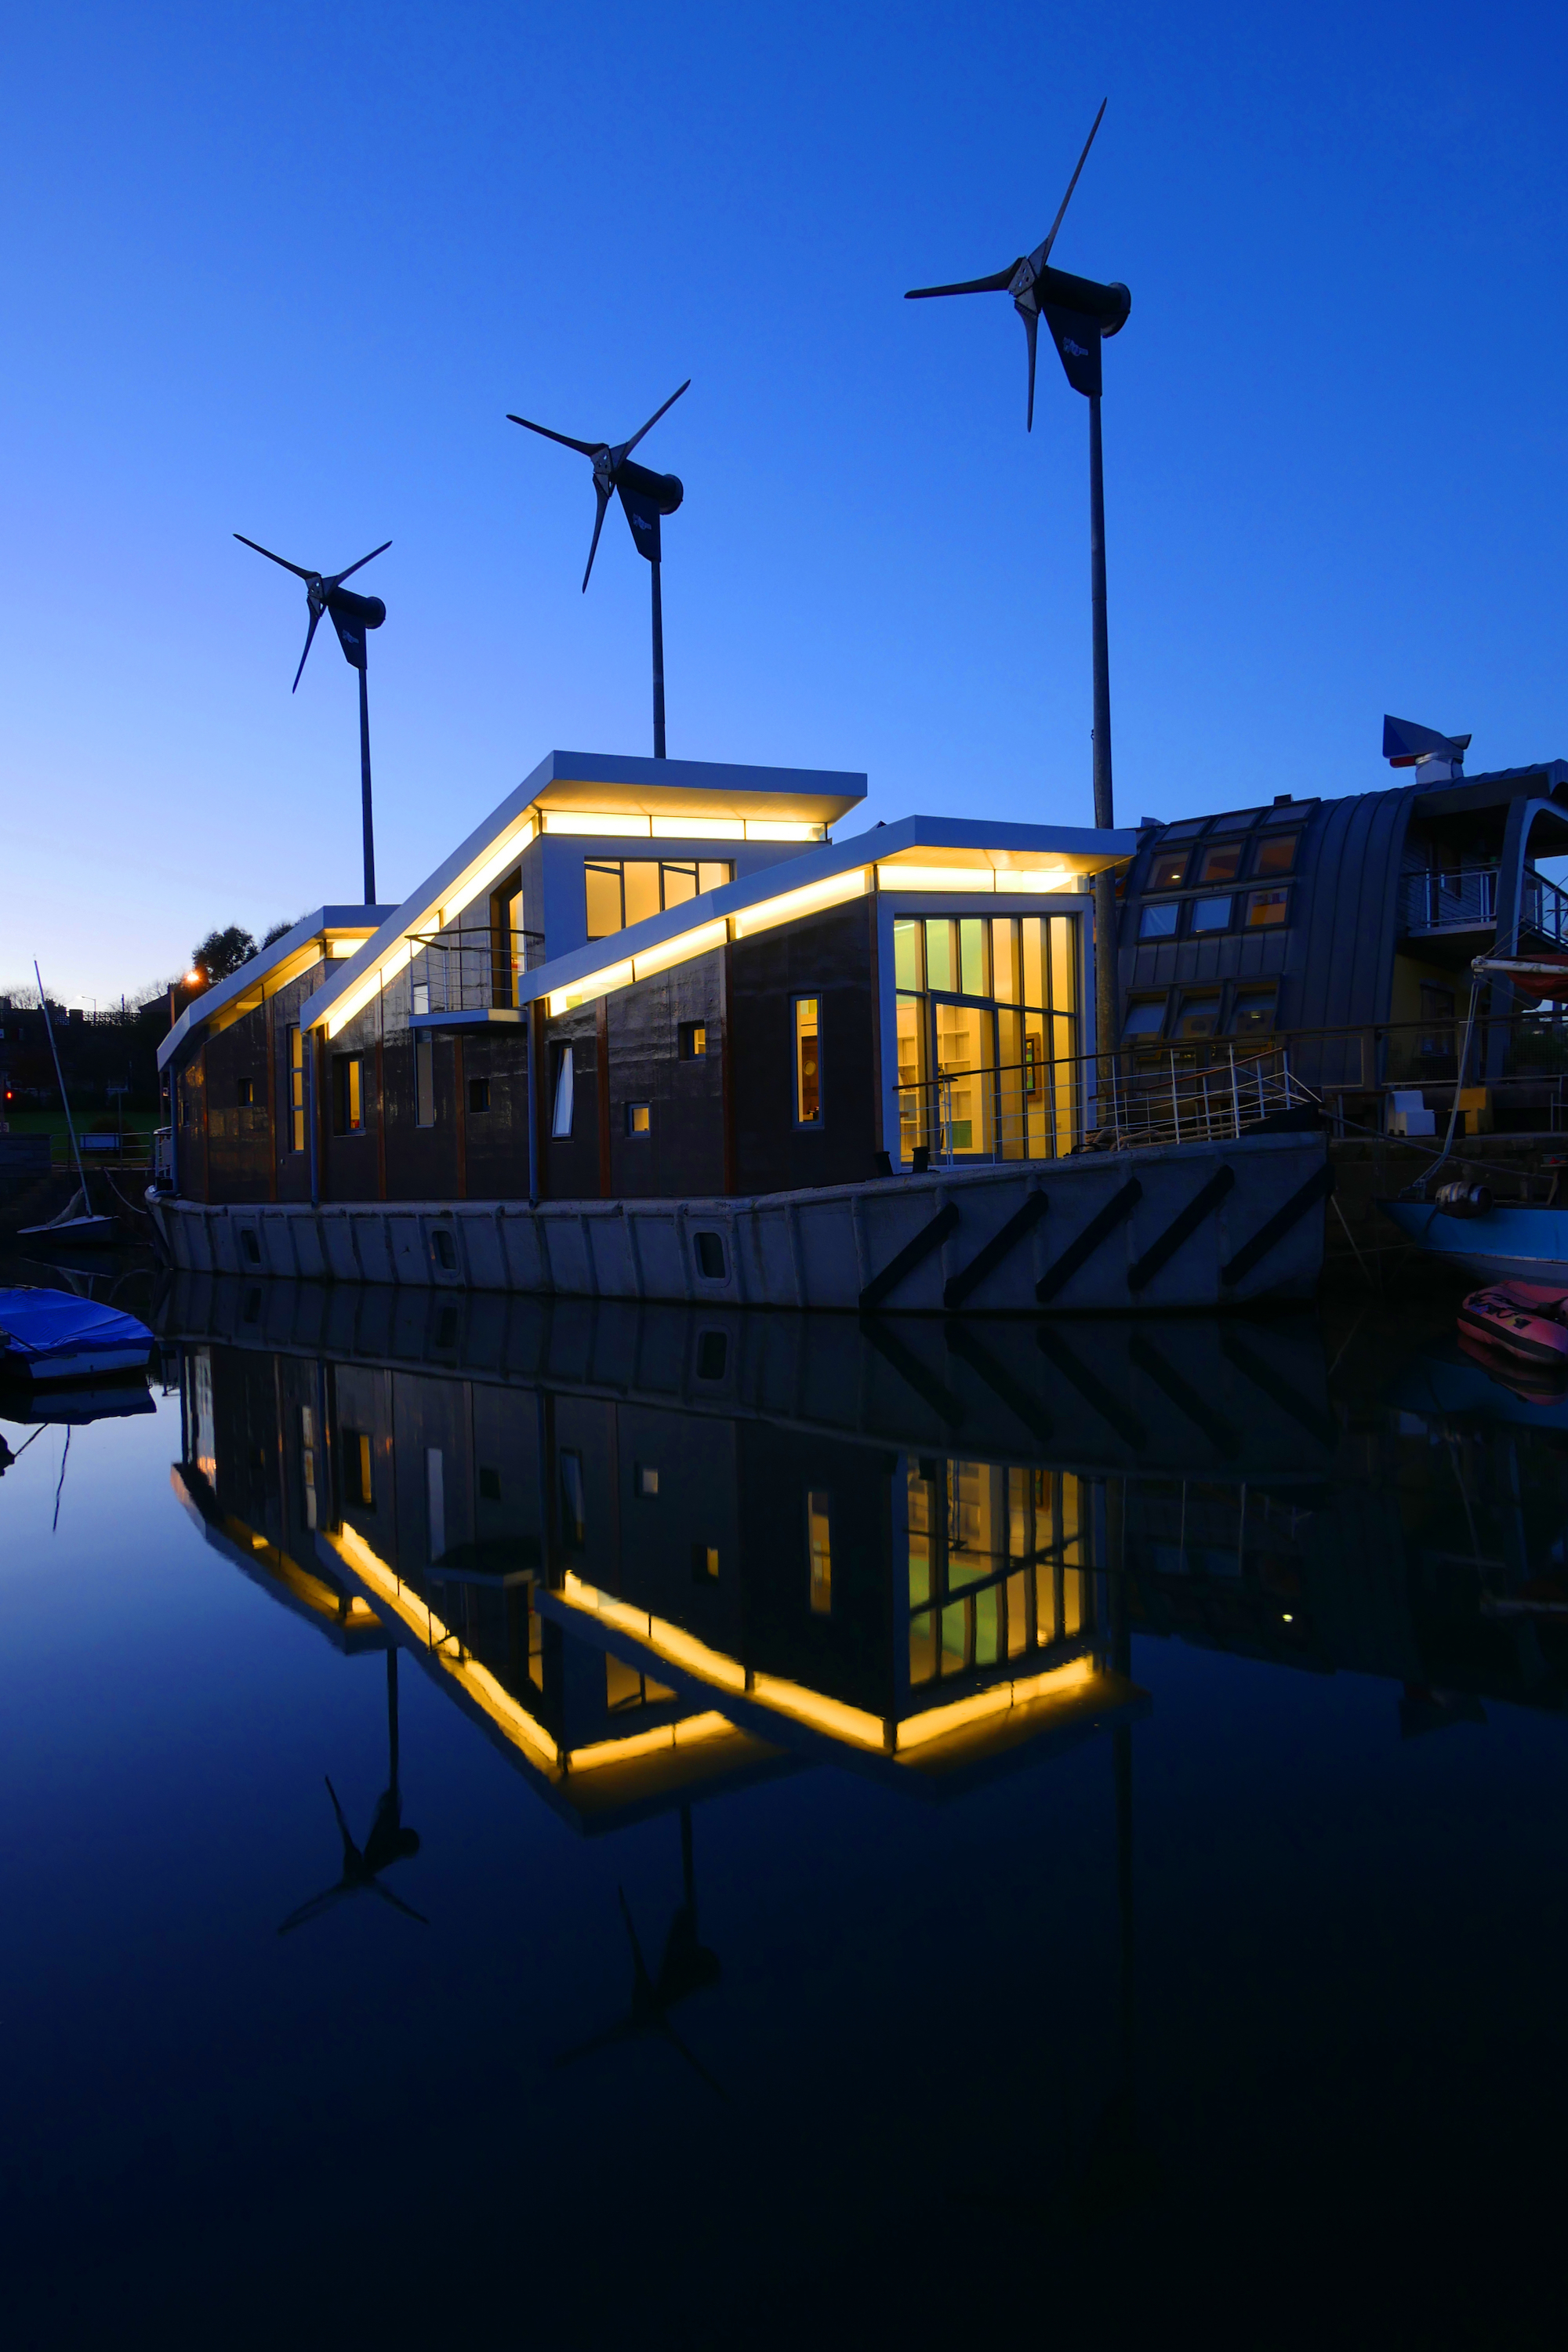 eleanor-bell-office-lighting-jubilee-wharf-barge-reflections.jpg